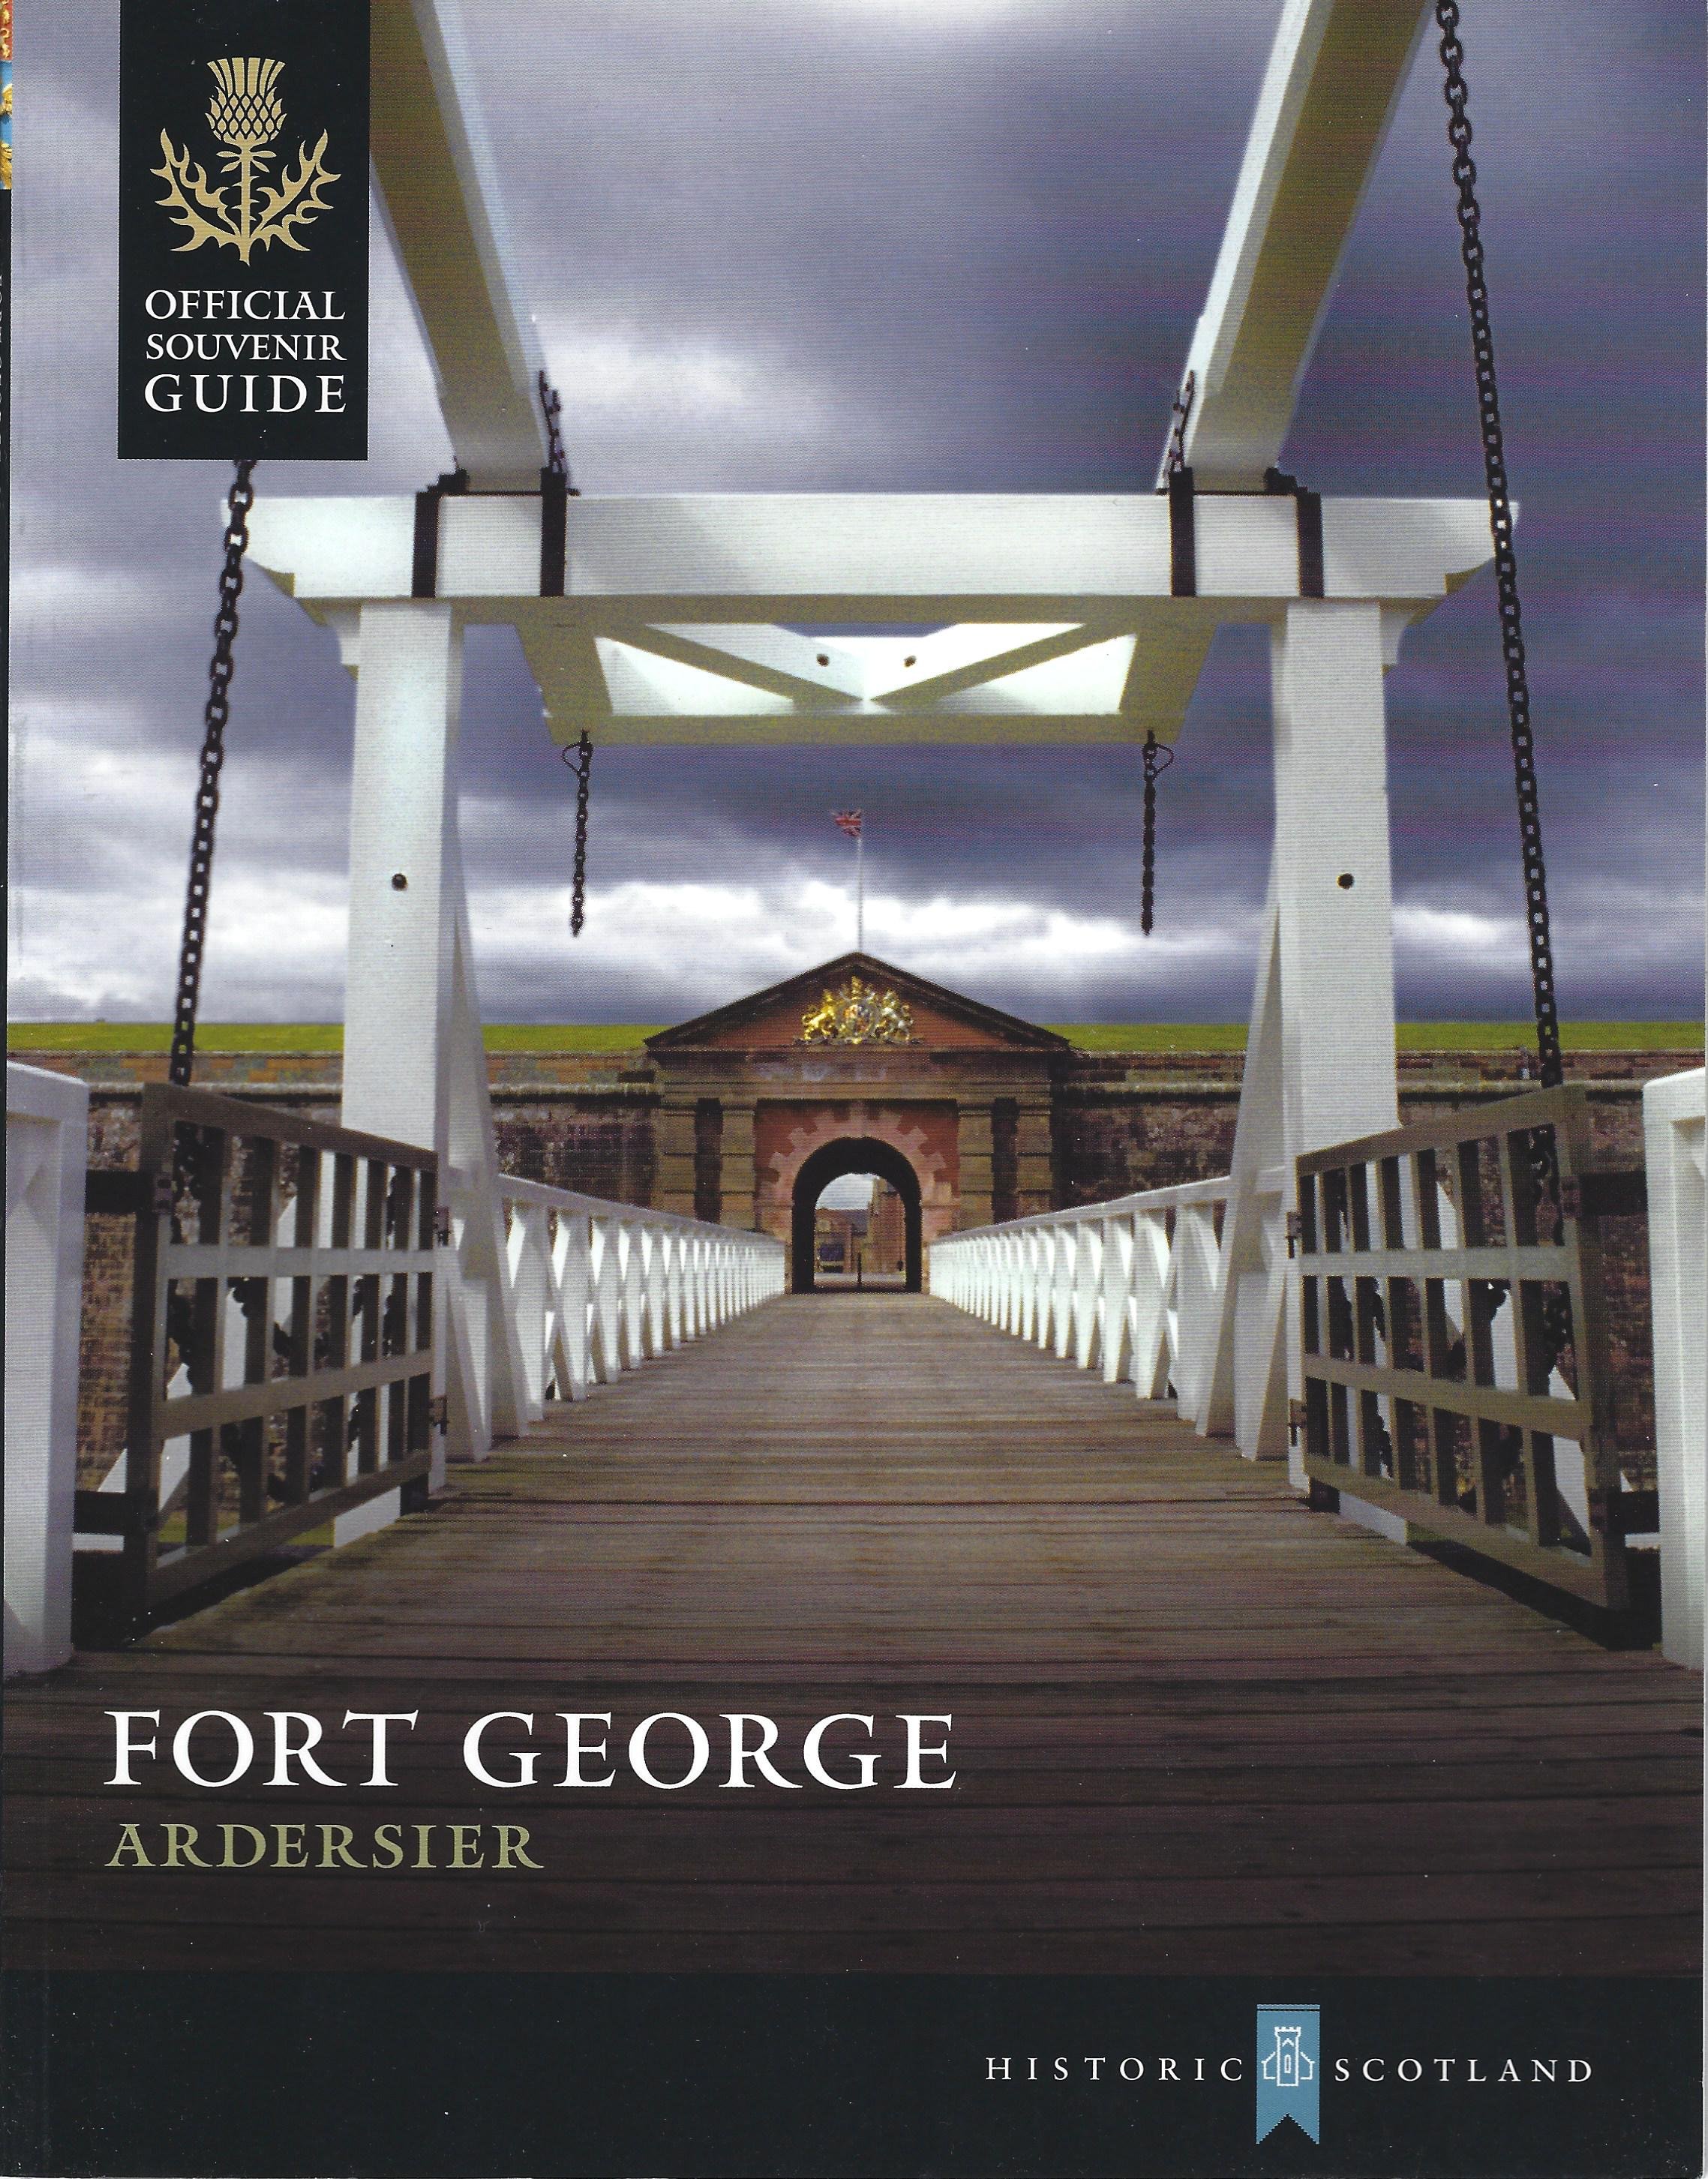 fortgeorge_hs_large